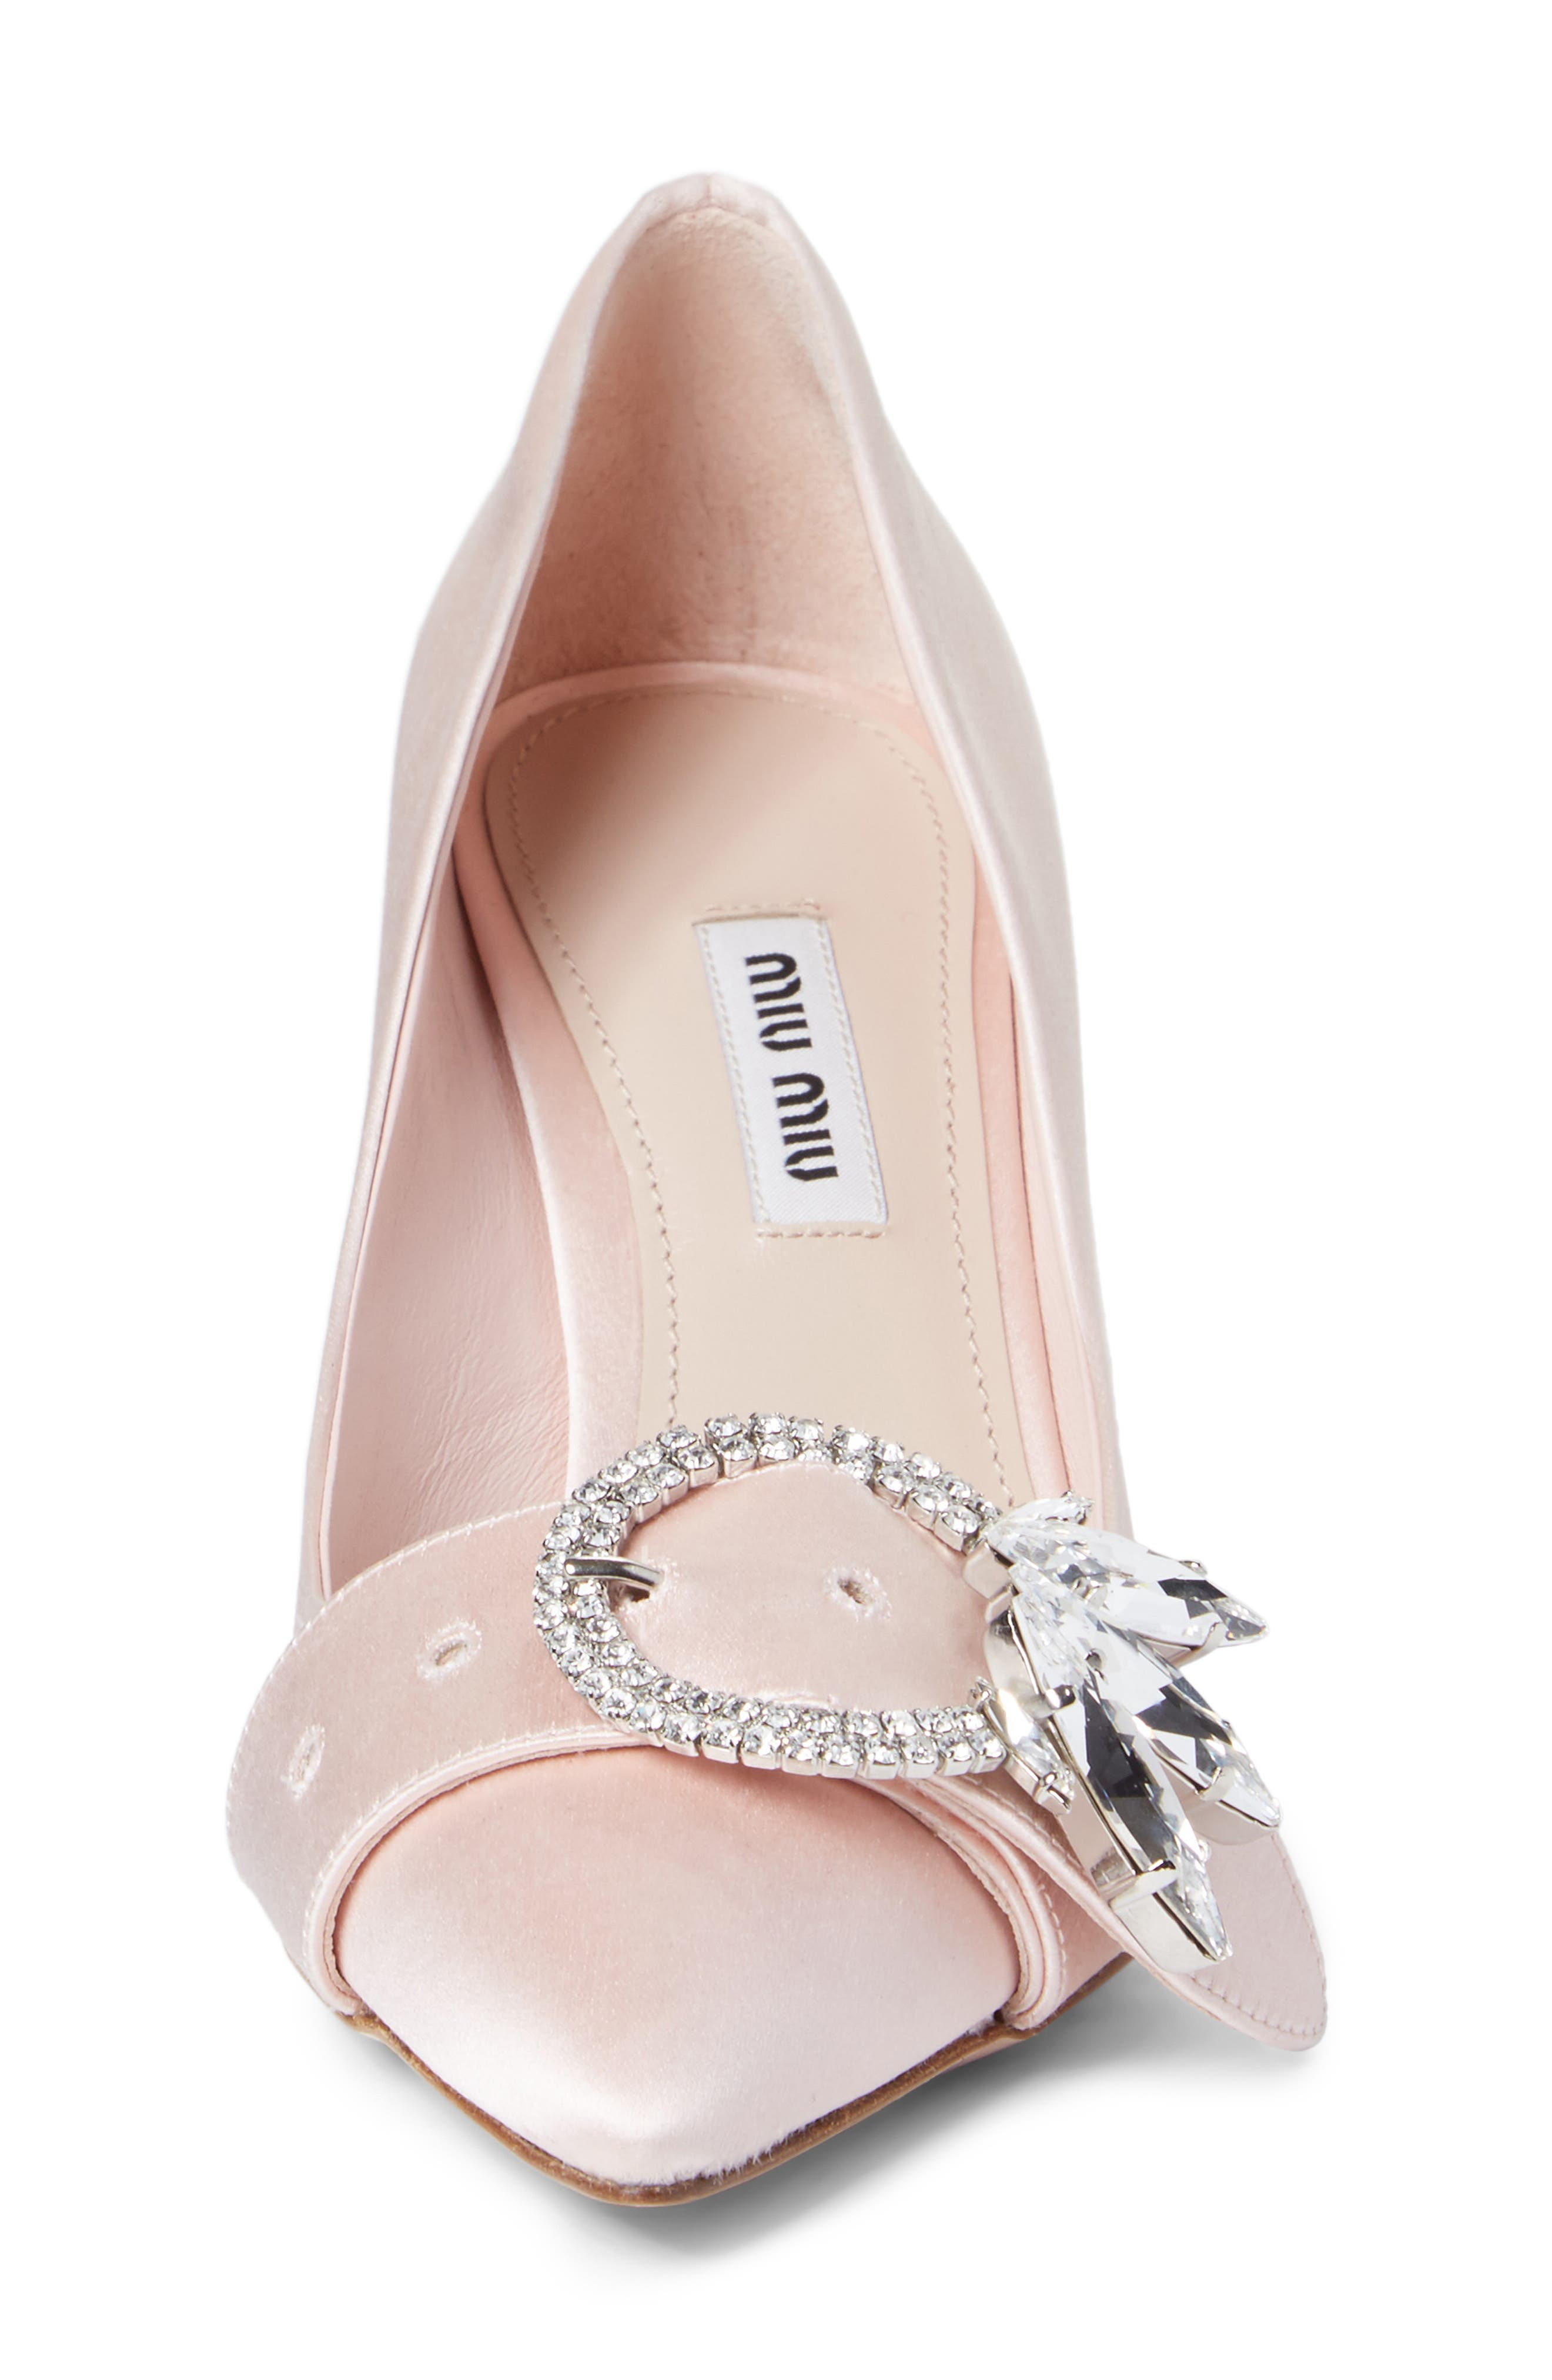 Crystal Buckle Pump,                             Alternate thumbnail 4, color,                             652